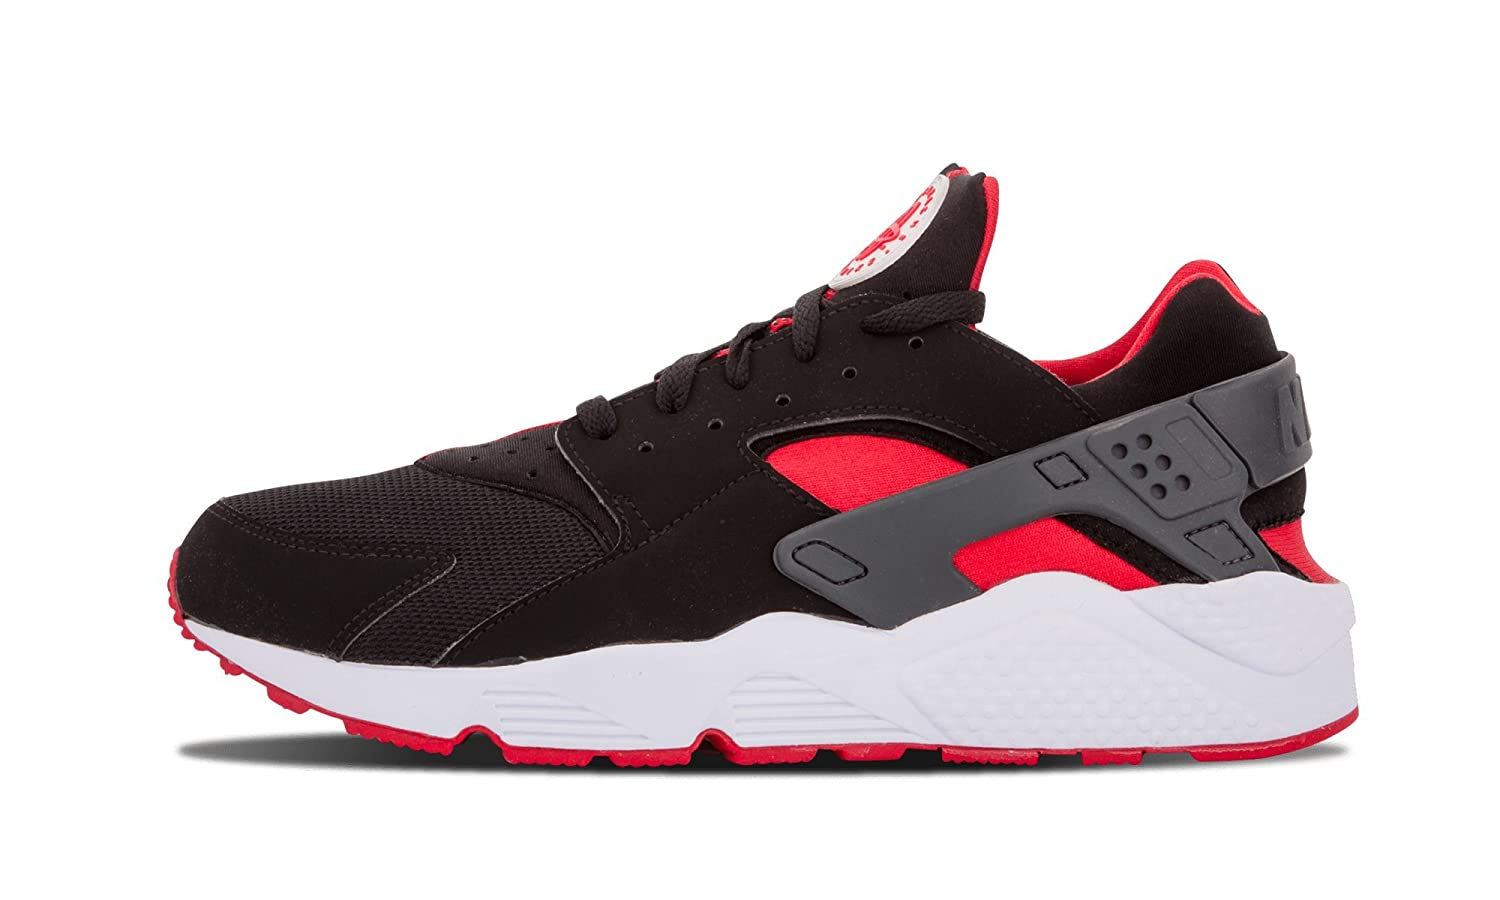 348d2922a32 NIKE Air Huarache (BRED) Black/University Red-University Red